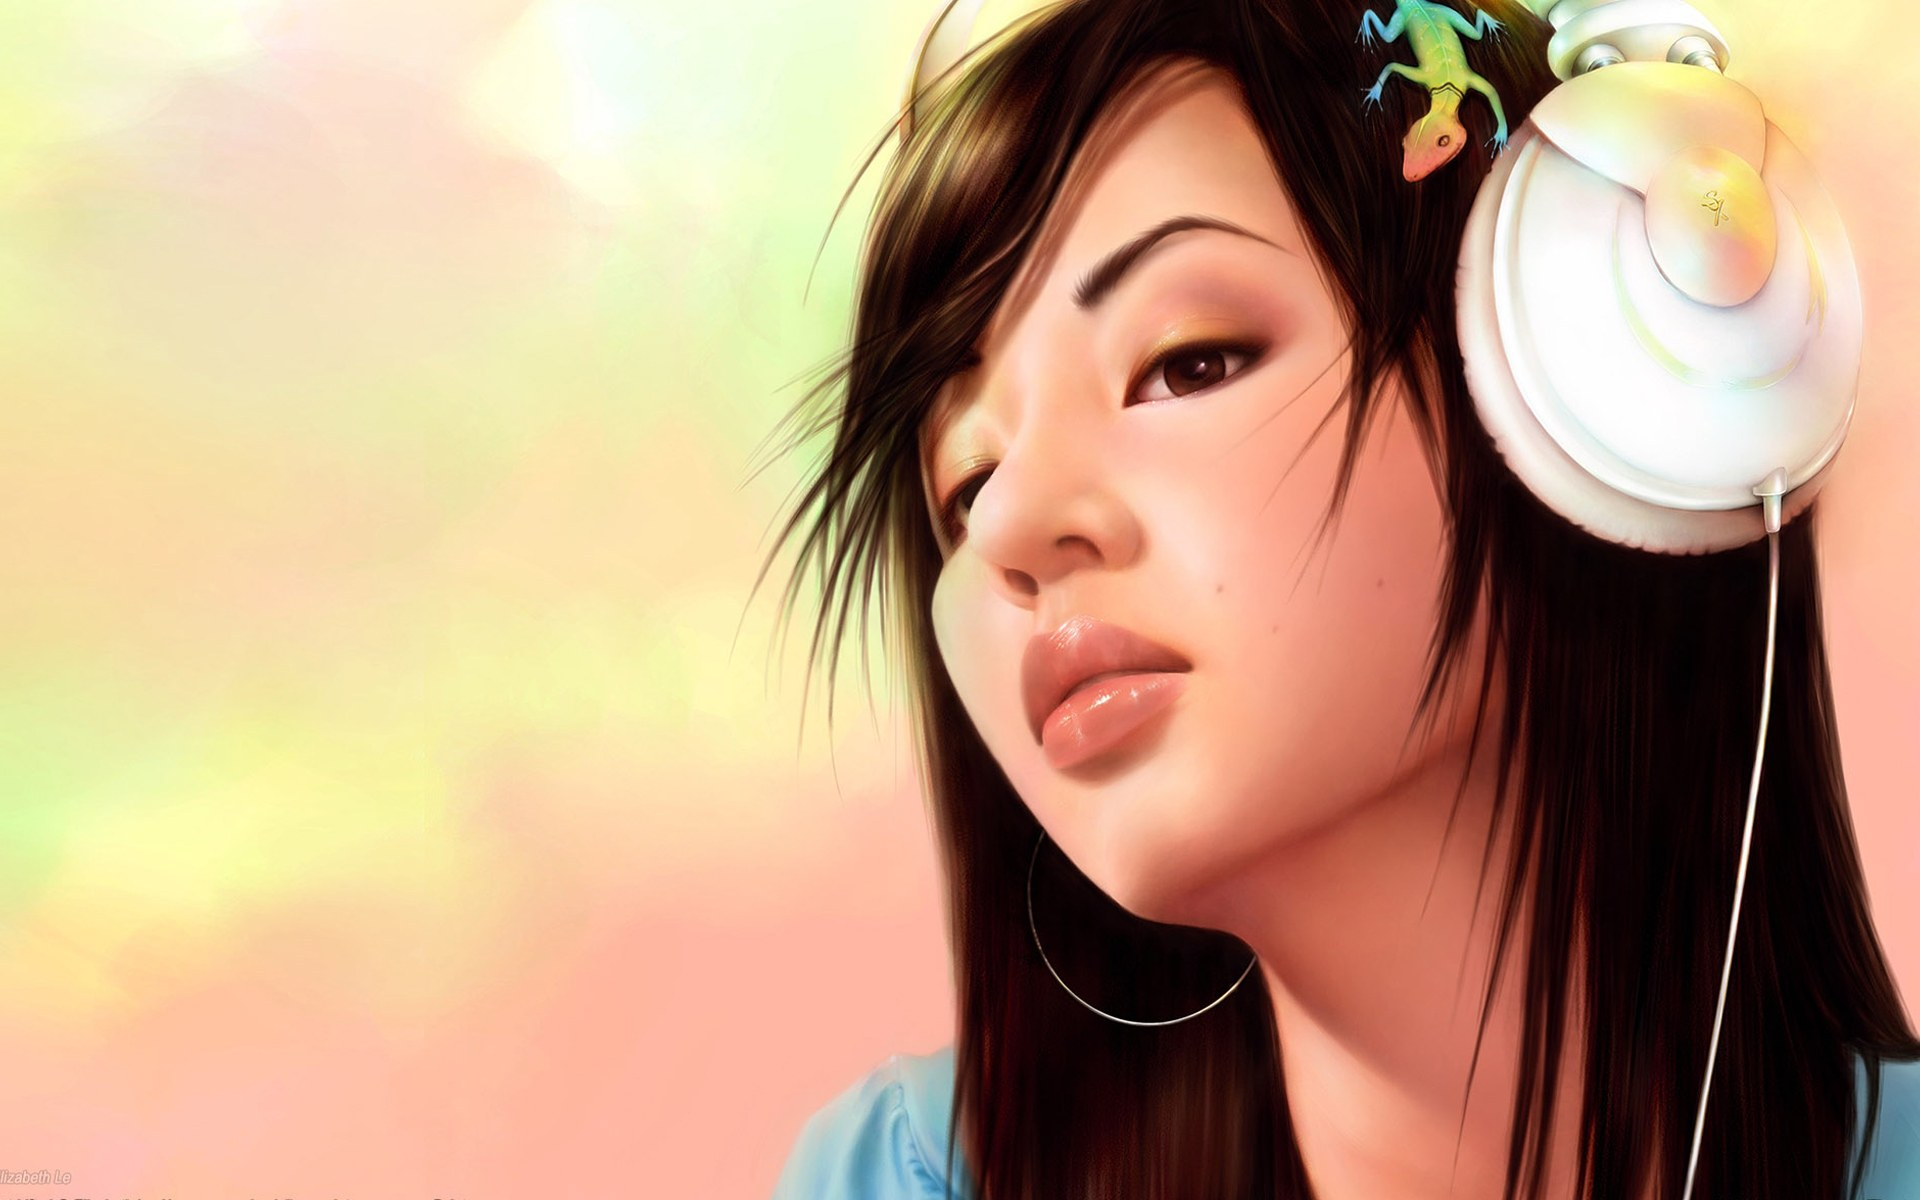 Cartoon Girl With Headphone HD Wallpaper